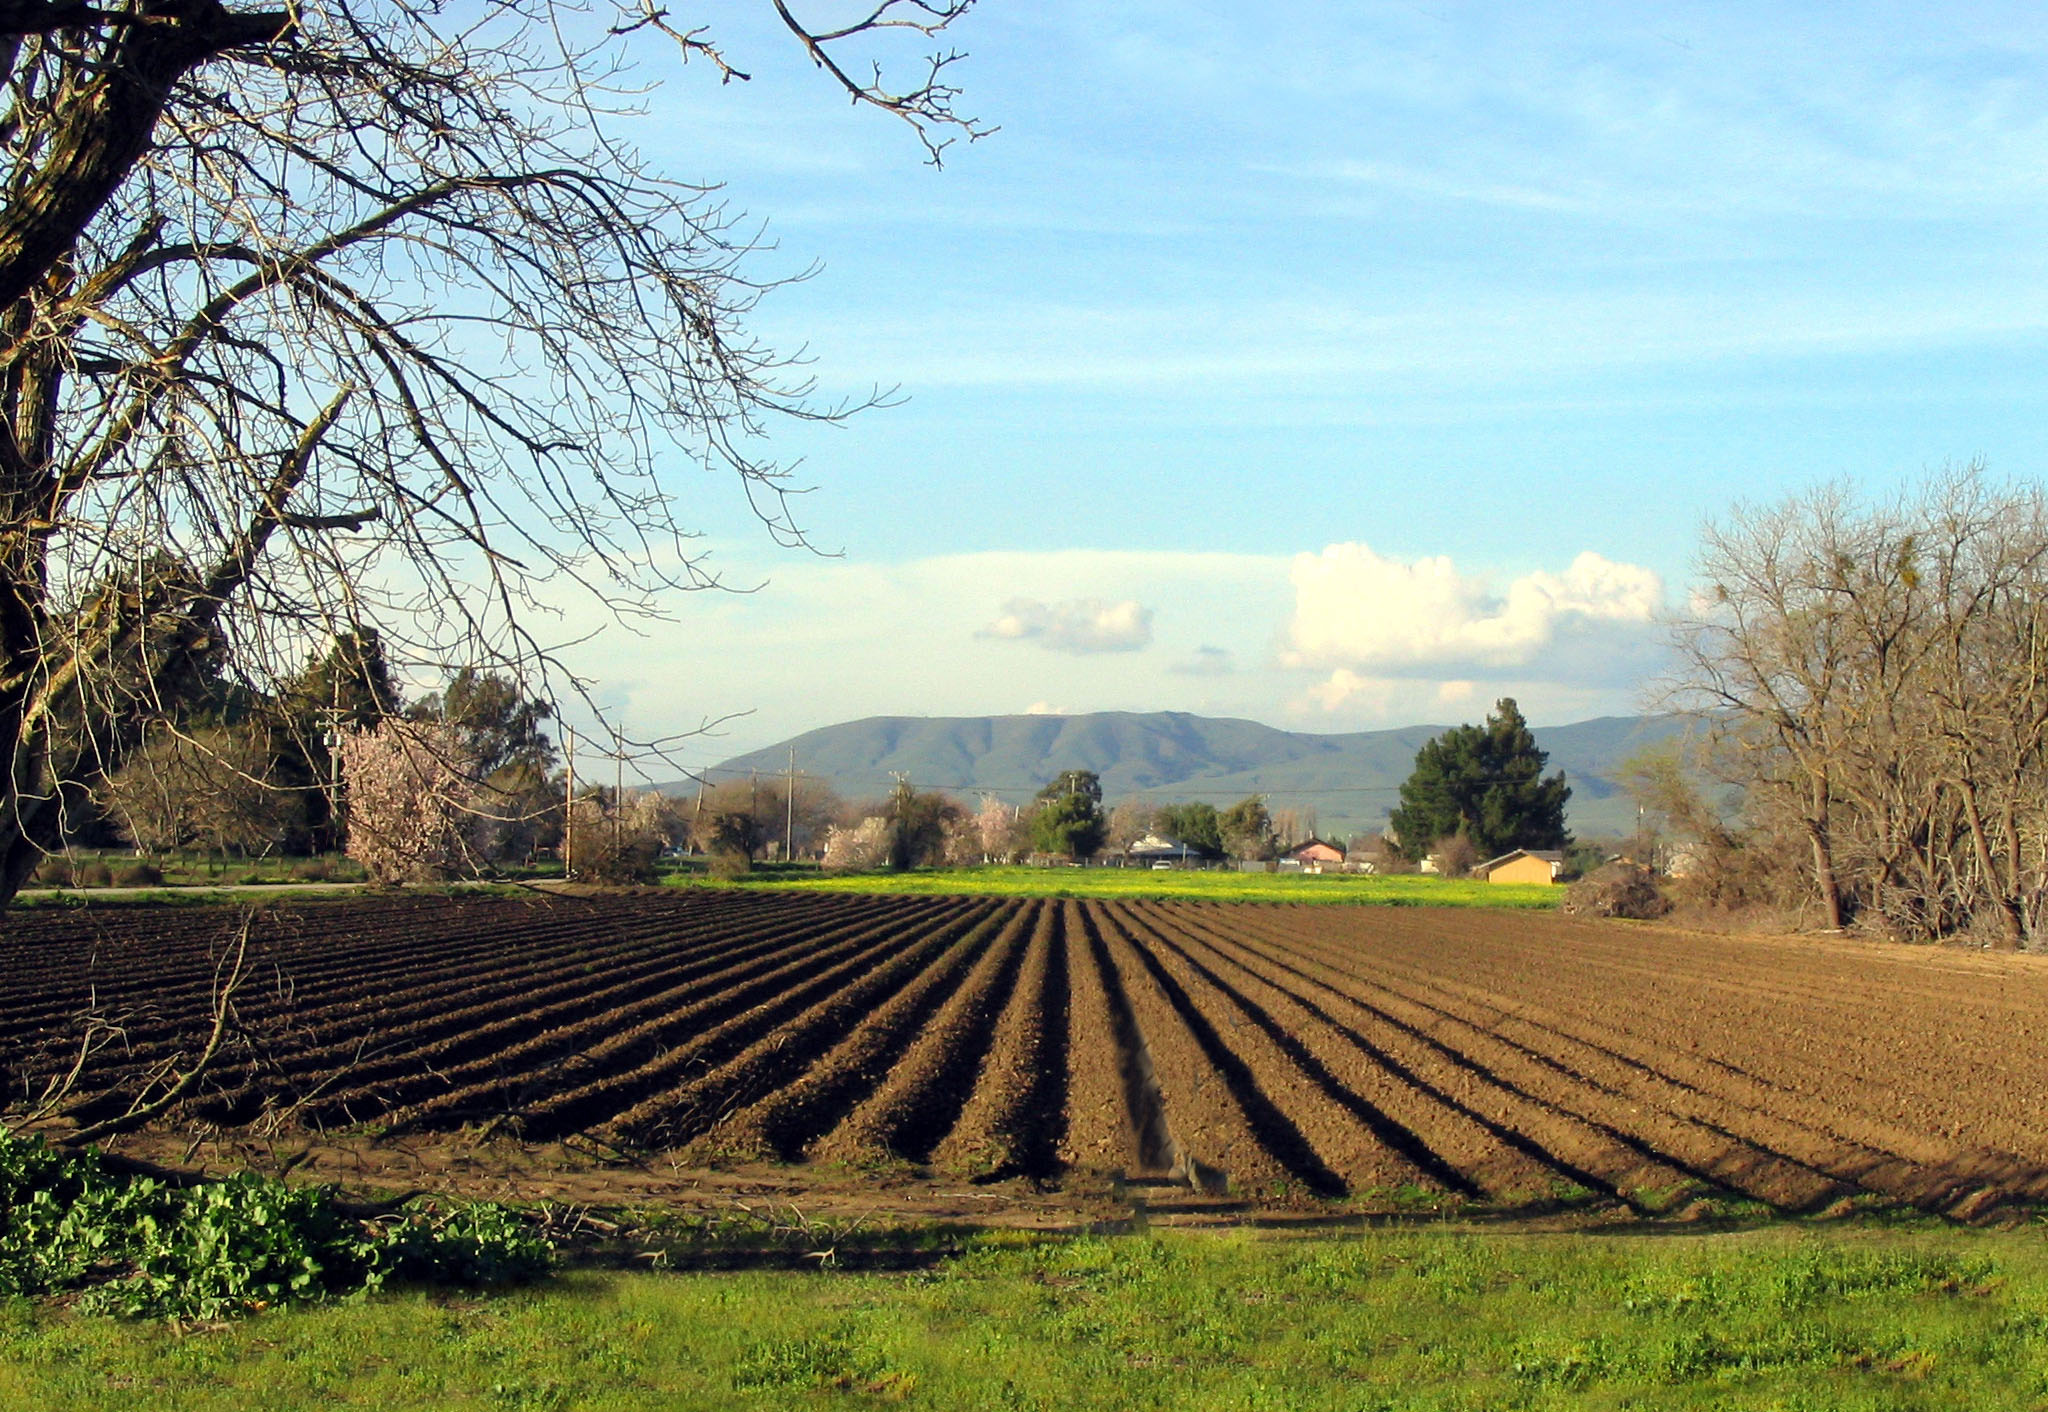 Agriculture: Commercial Agriculture